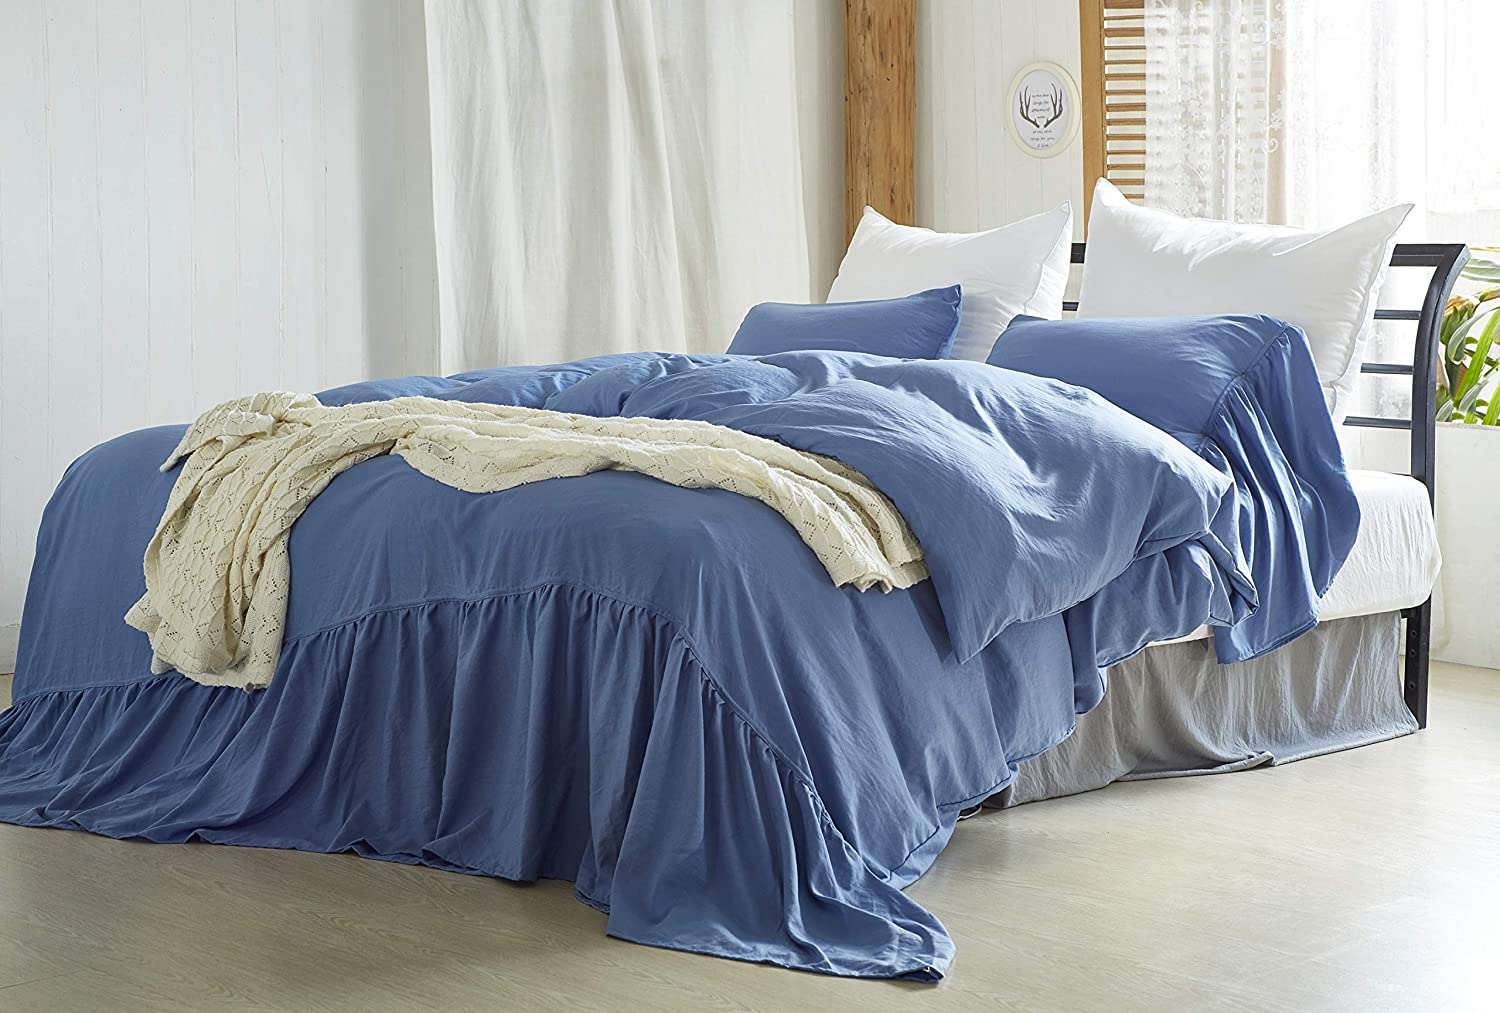 LELVA Ruffled Duvet Cover with Popular brand in the world Pillow Free shipping Piece Shams Vintage Blue 3